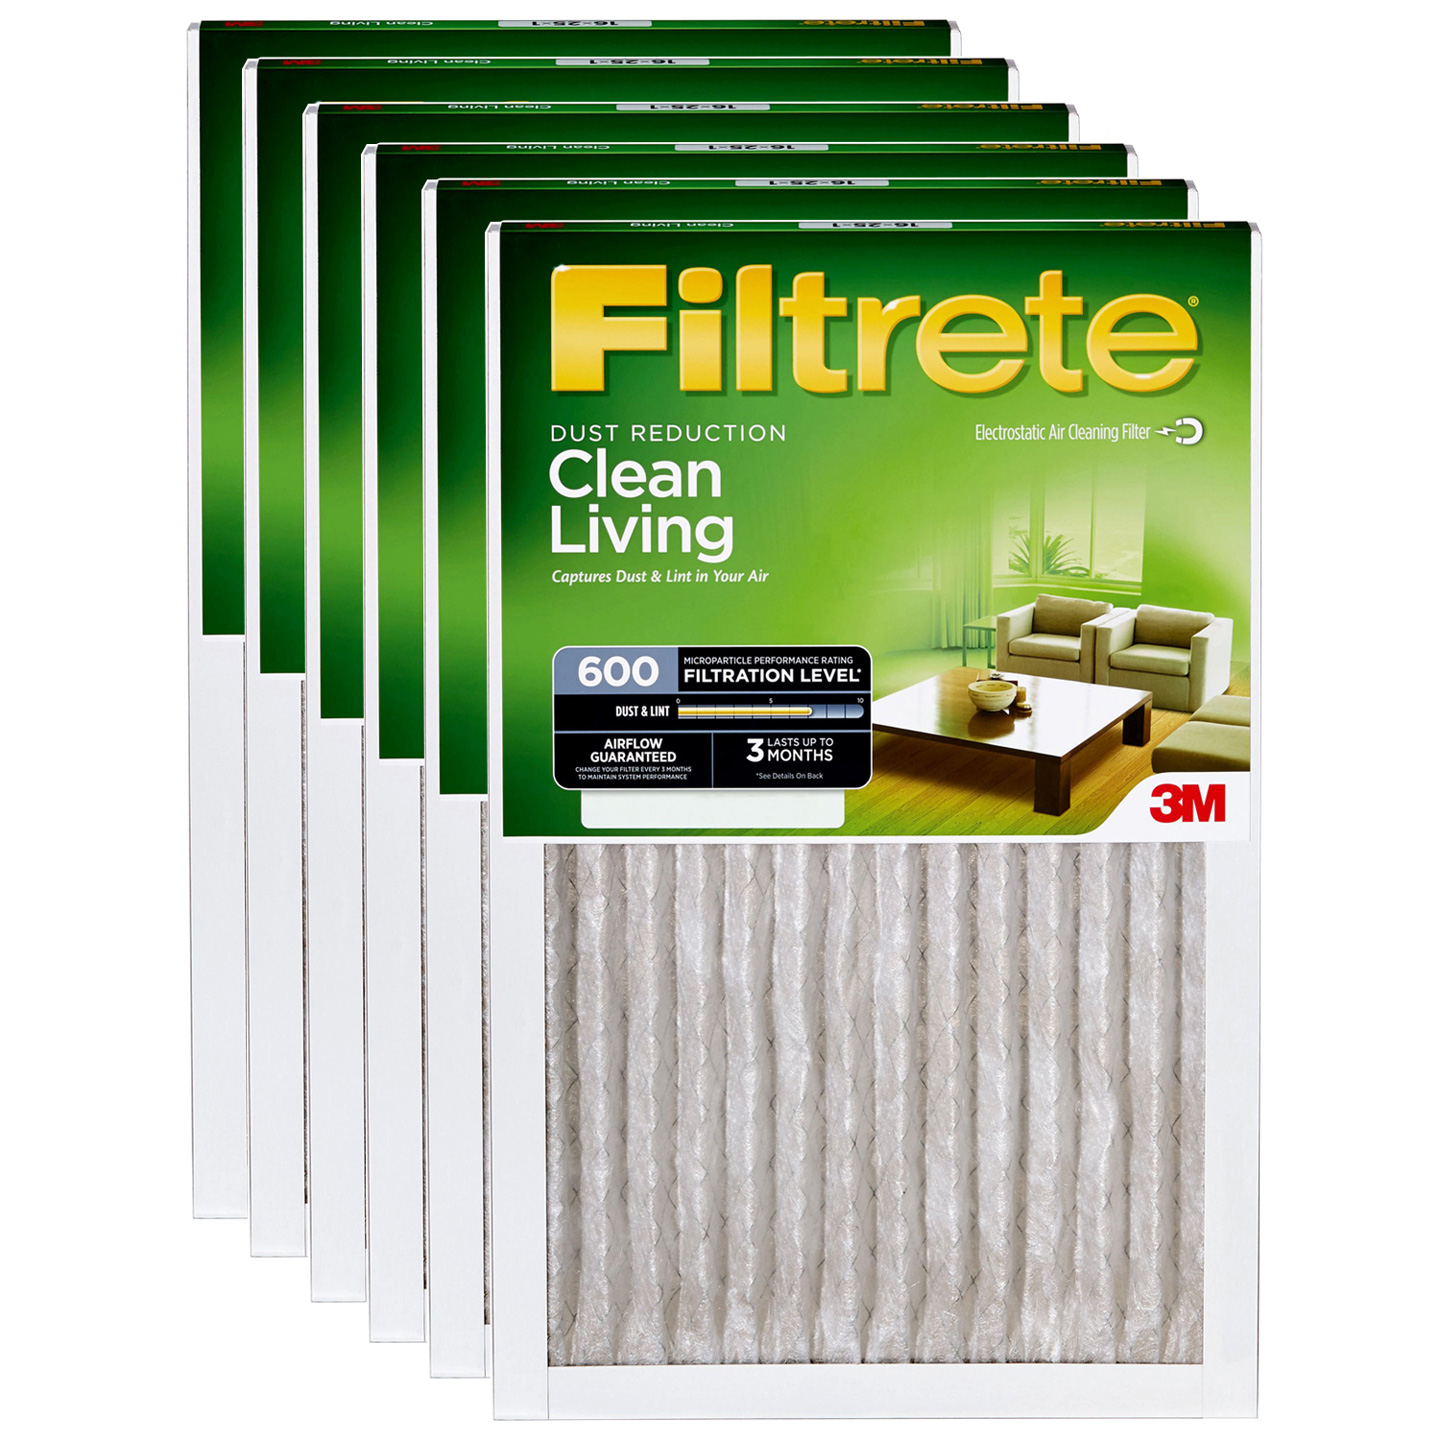 14x30x1 3M Filtrete Dust and Pollen Filter (6-Pack) FILTRETE_DUST_14x30x1_6_PACK